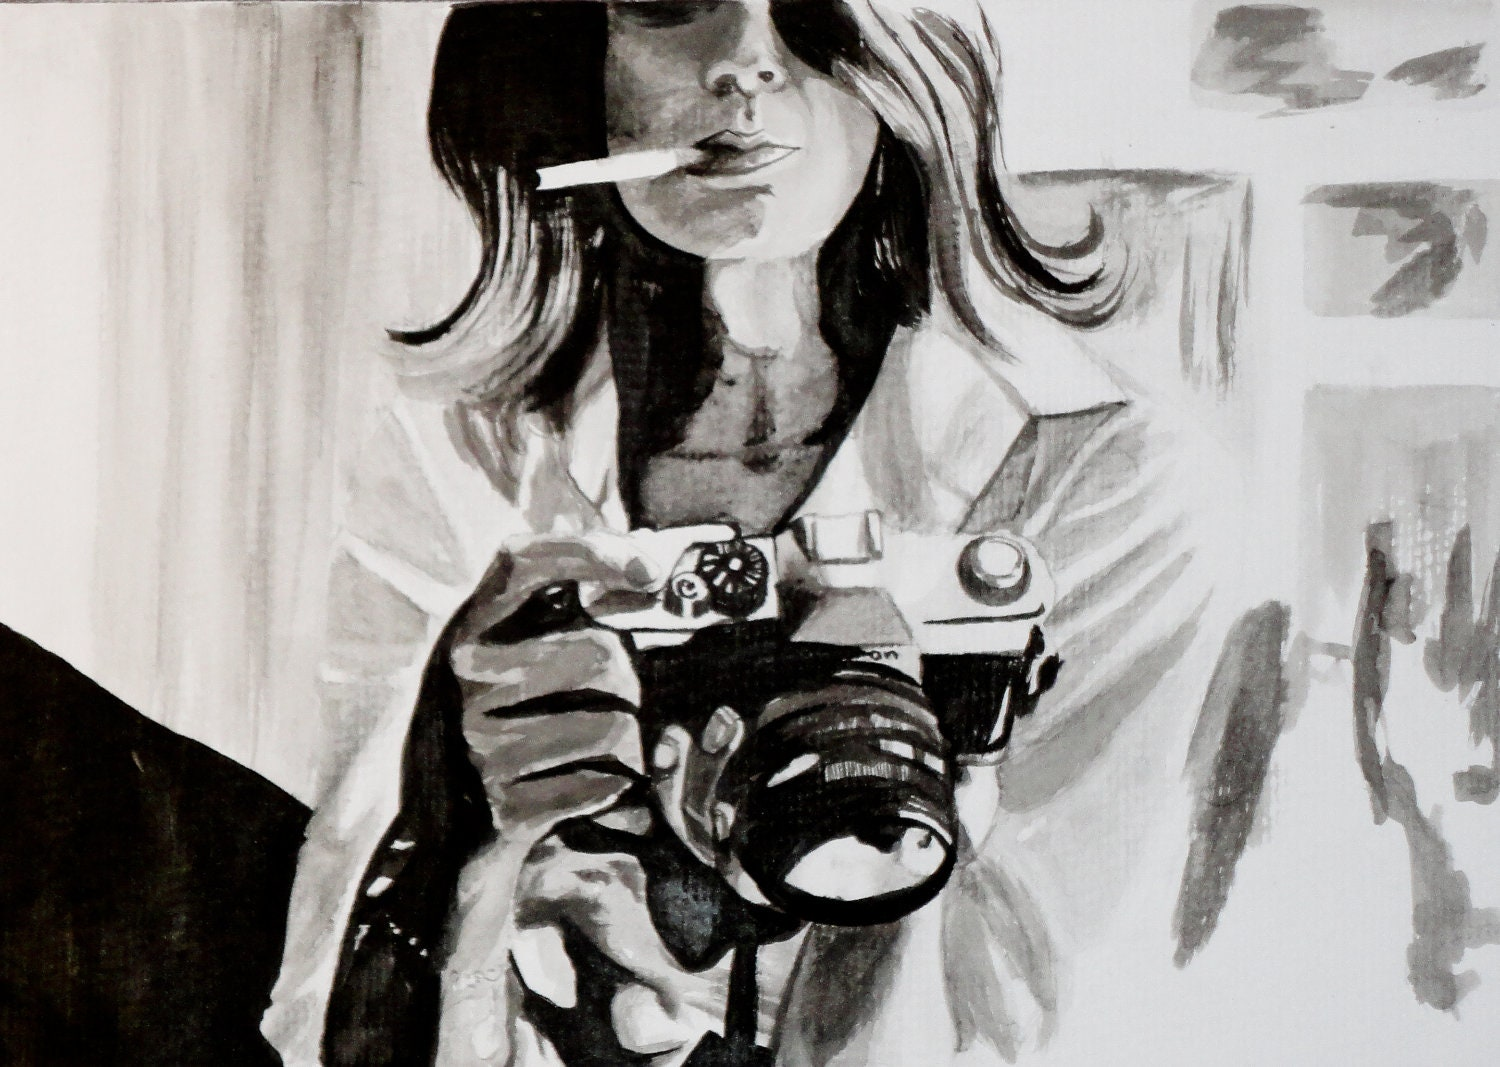 Smoking Woman with Film Camera Art Print in Black and White - KimLegler